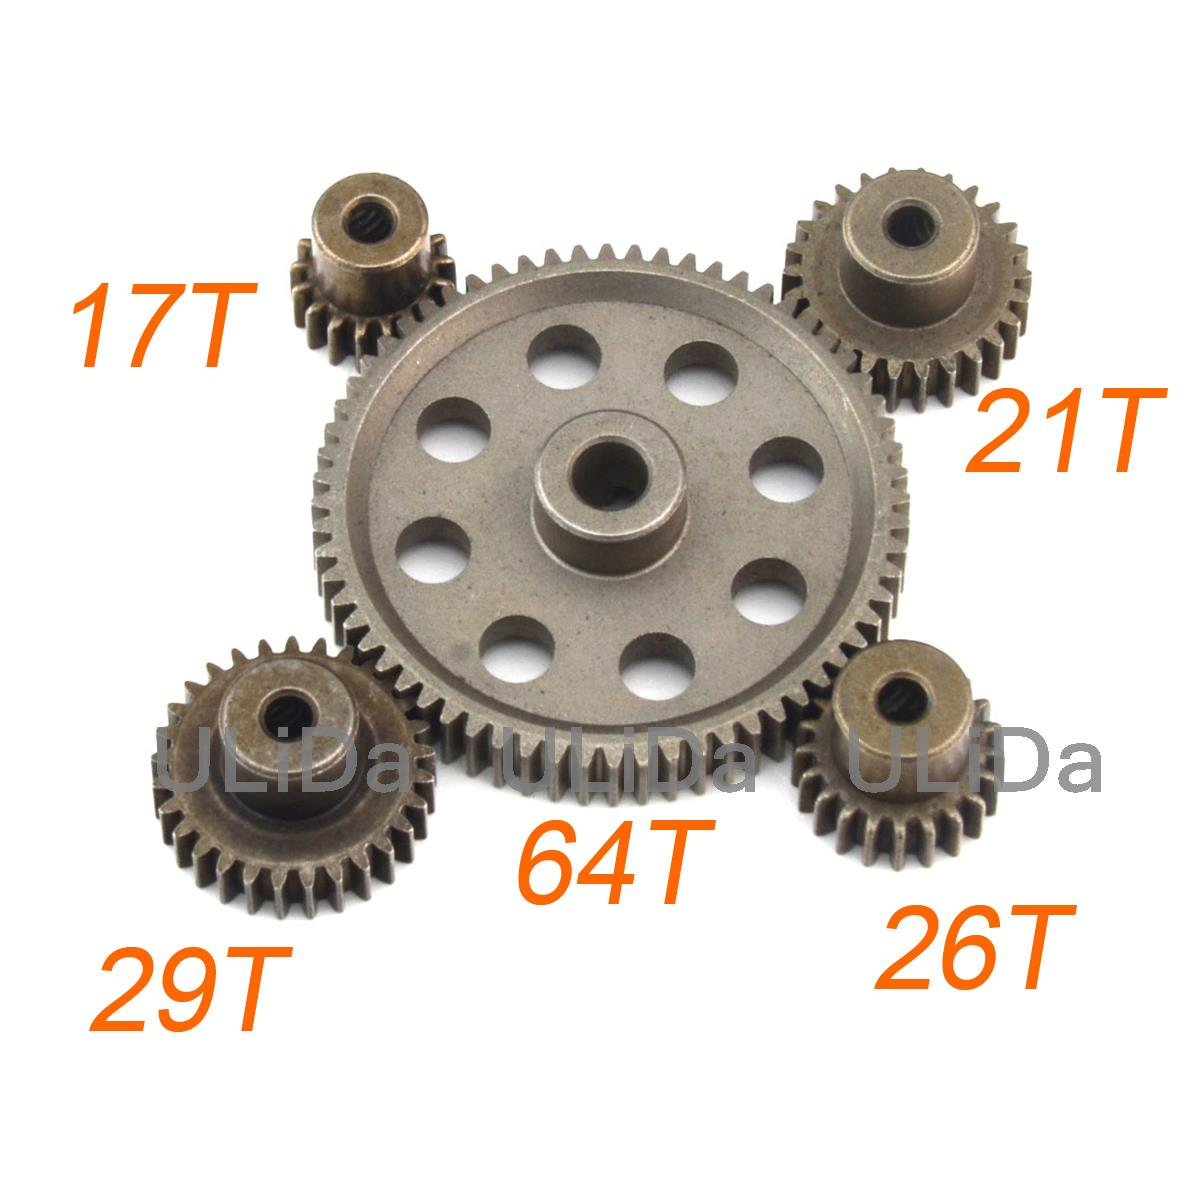 11184 Metal Steel Spur Differential Main Gear 64T Motor Pinion Gears HSP Redcat